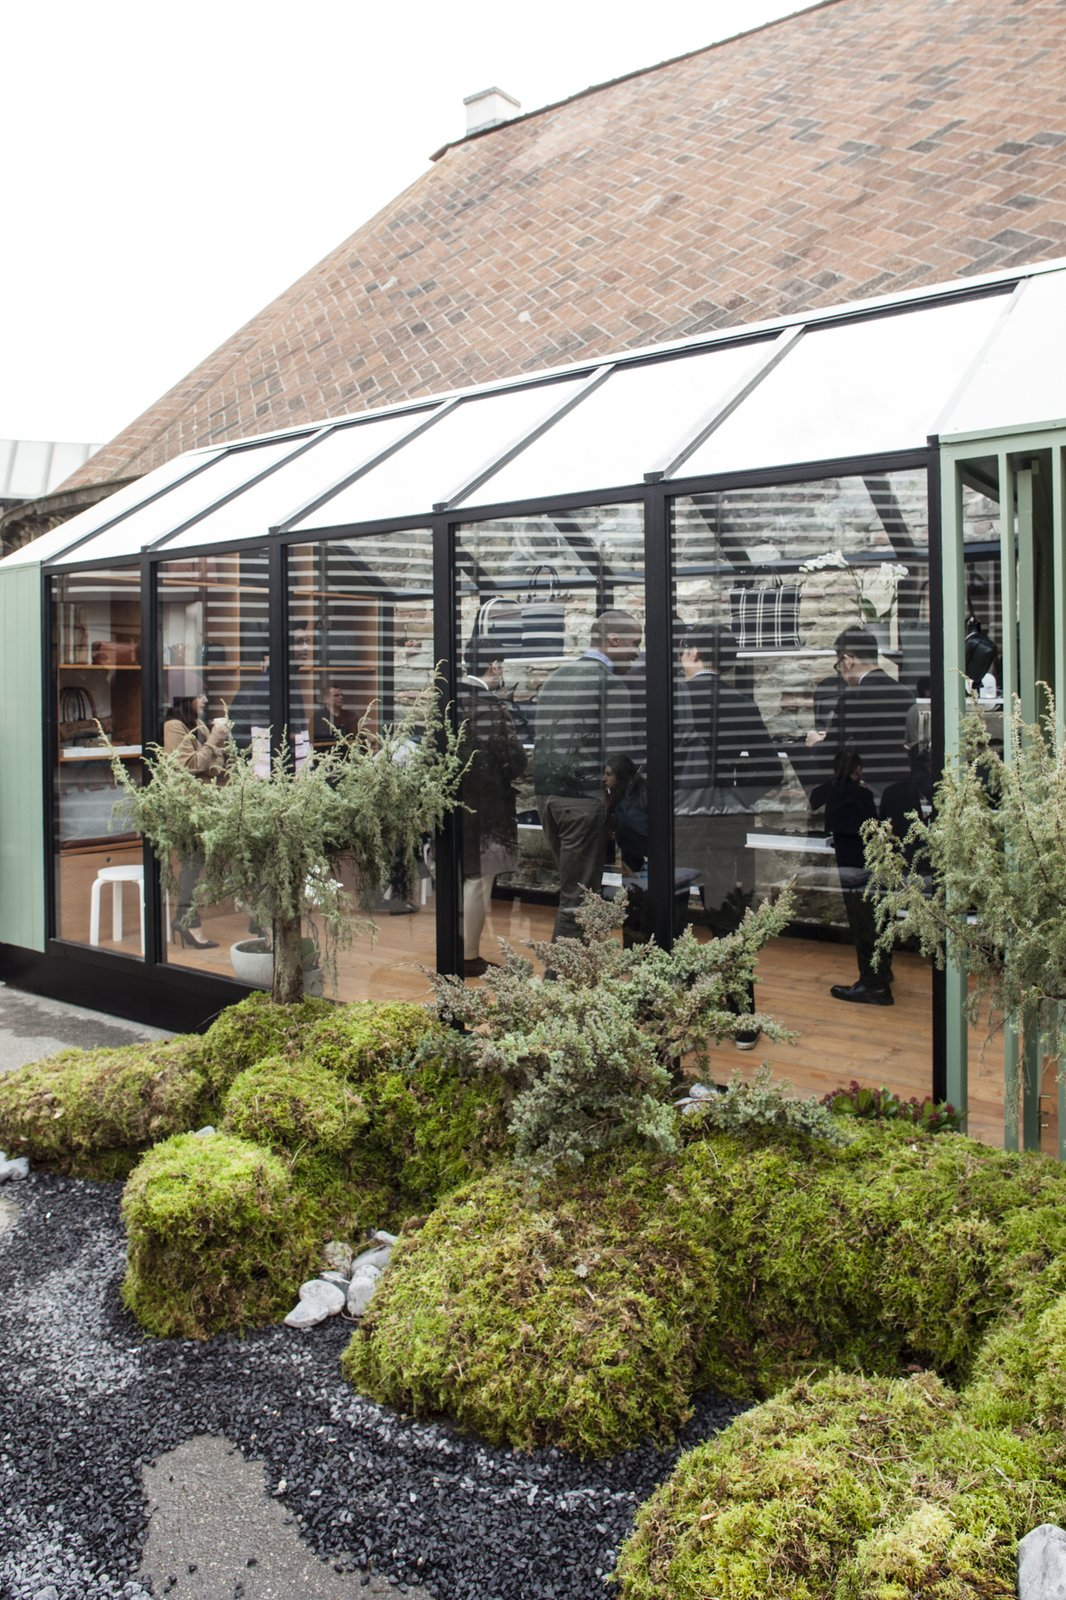 The structure's minimalist shape and  Photo 4 of 8 in The Alpine Lodge by WANT Les Essentiels de la Vie